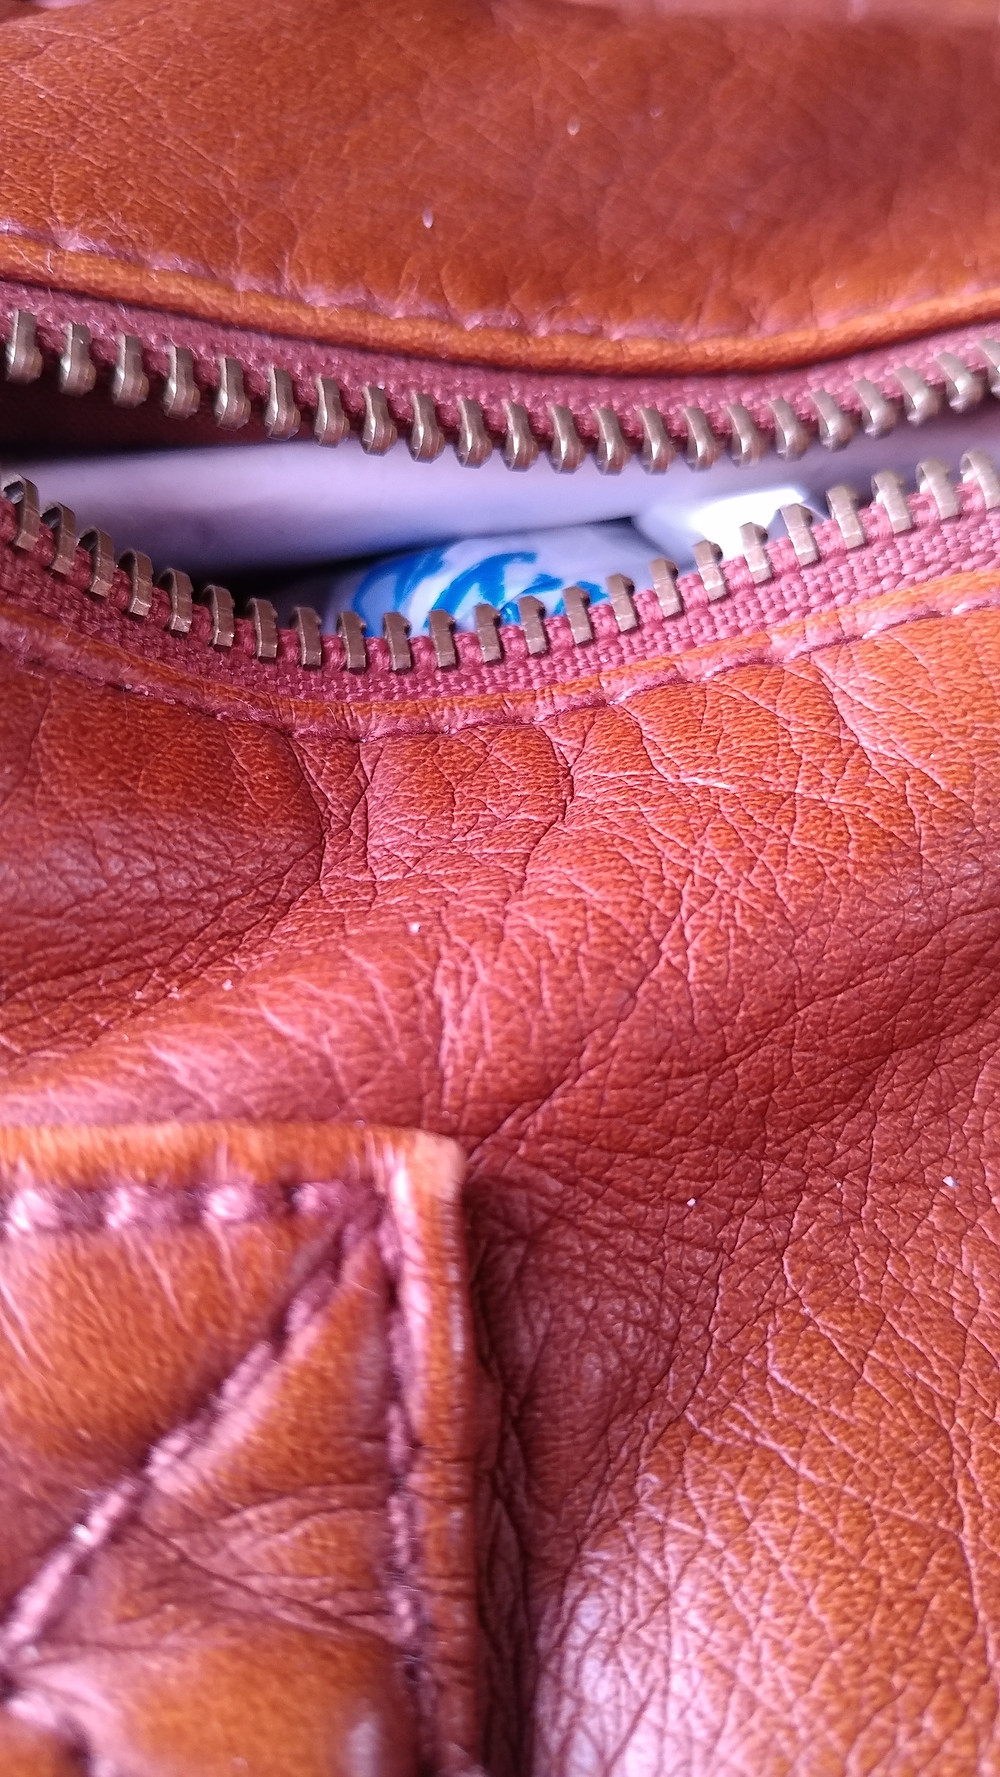 (This is just a photograph of my purse, but the phone camera makes it look glorious)